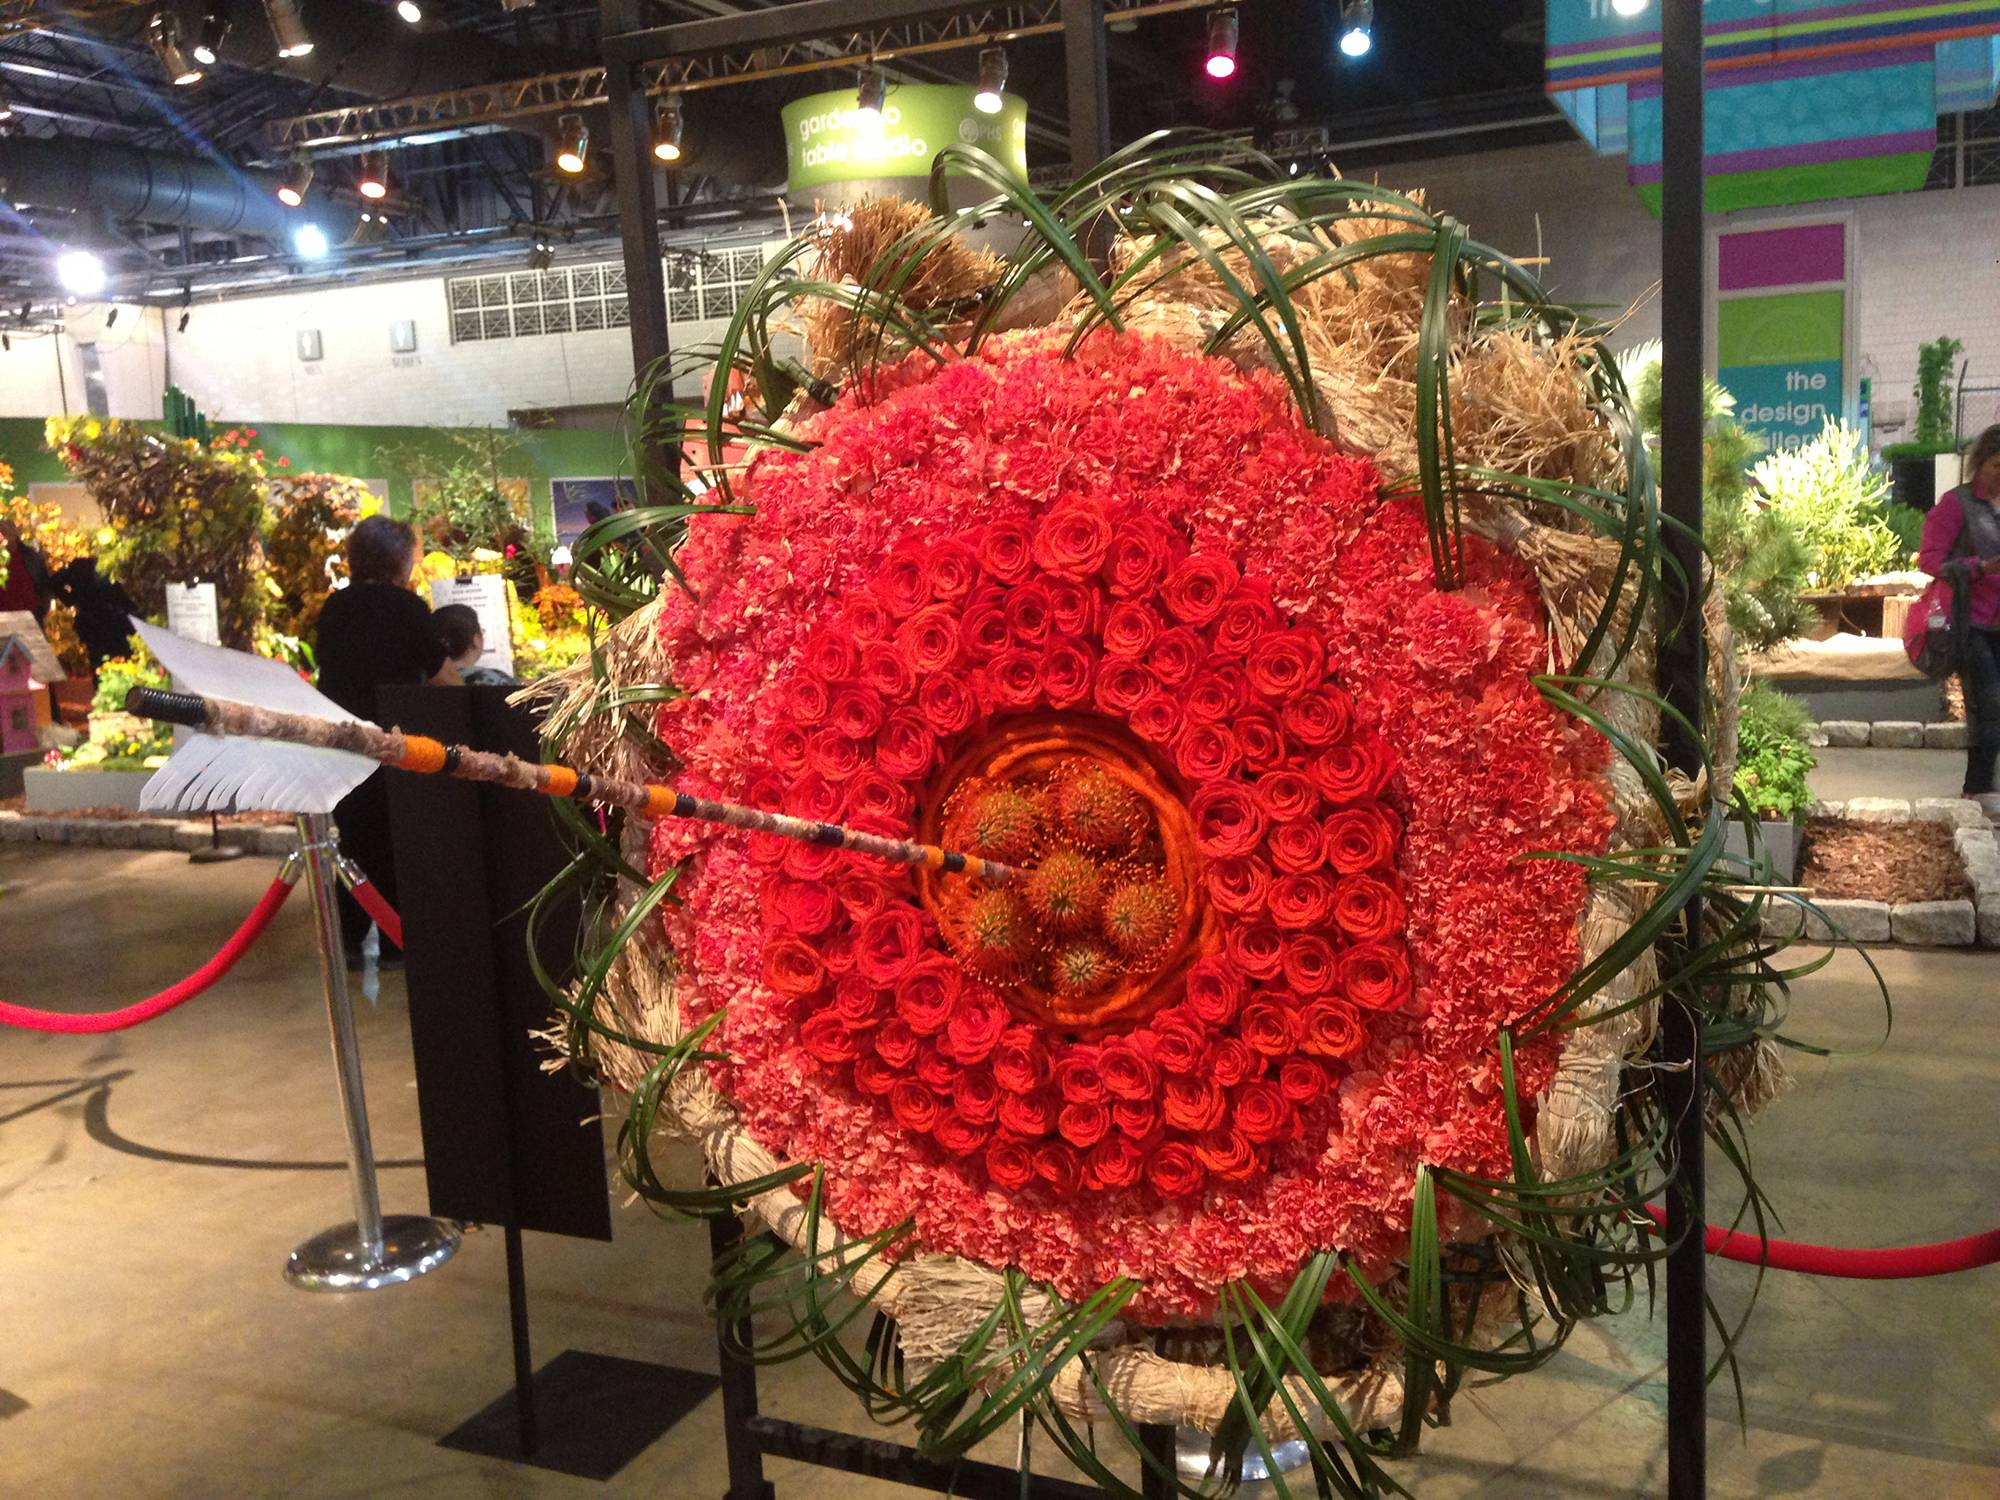 The Philadelphia Flower Show runs through Sunday in downtown Philadelphia. This year, design exhibits are linked to Disney characters and movies, like this floral tribute to the archer princess Merida.